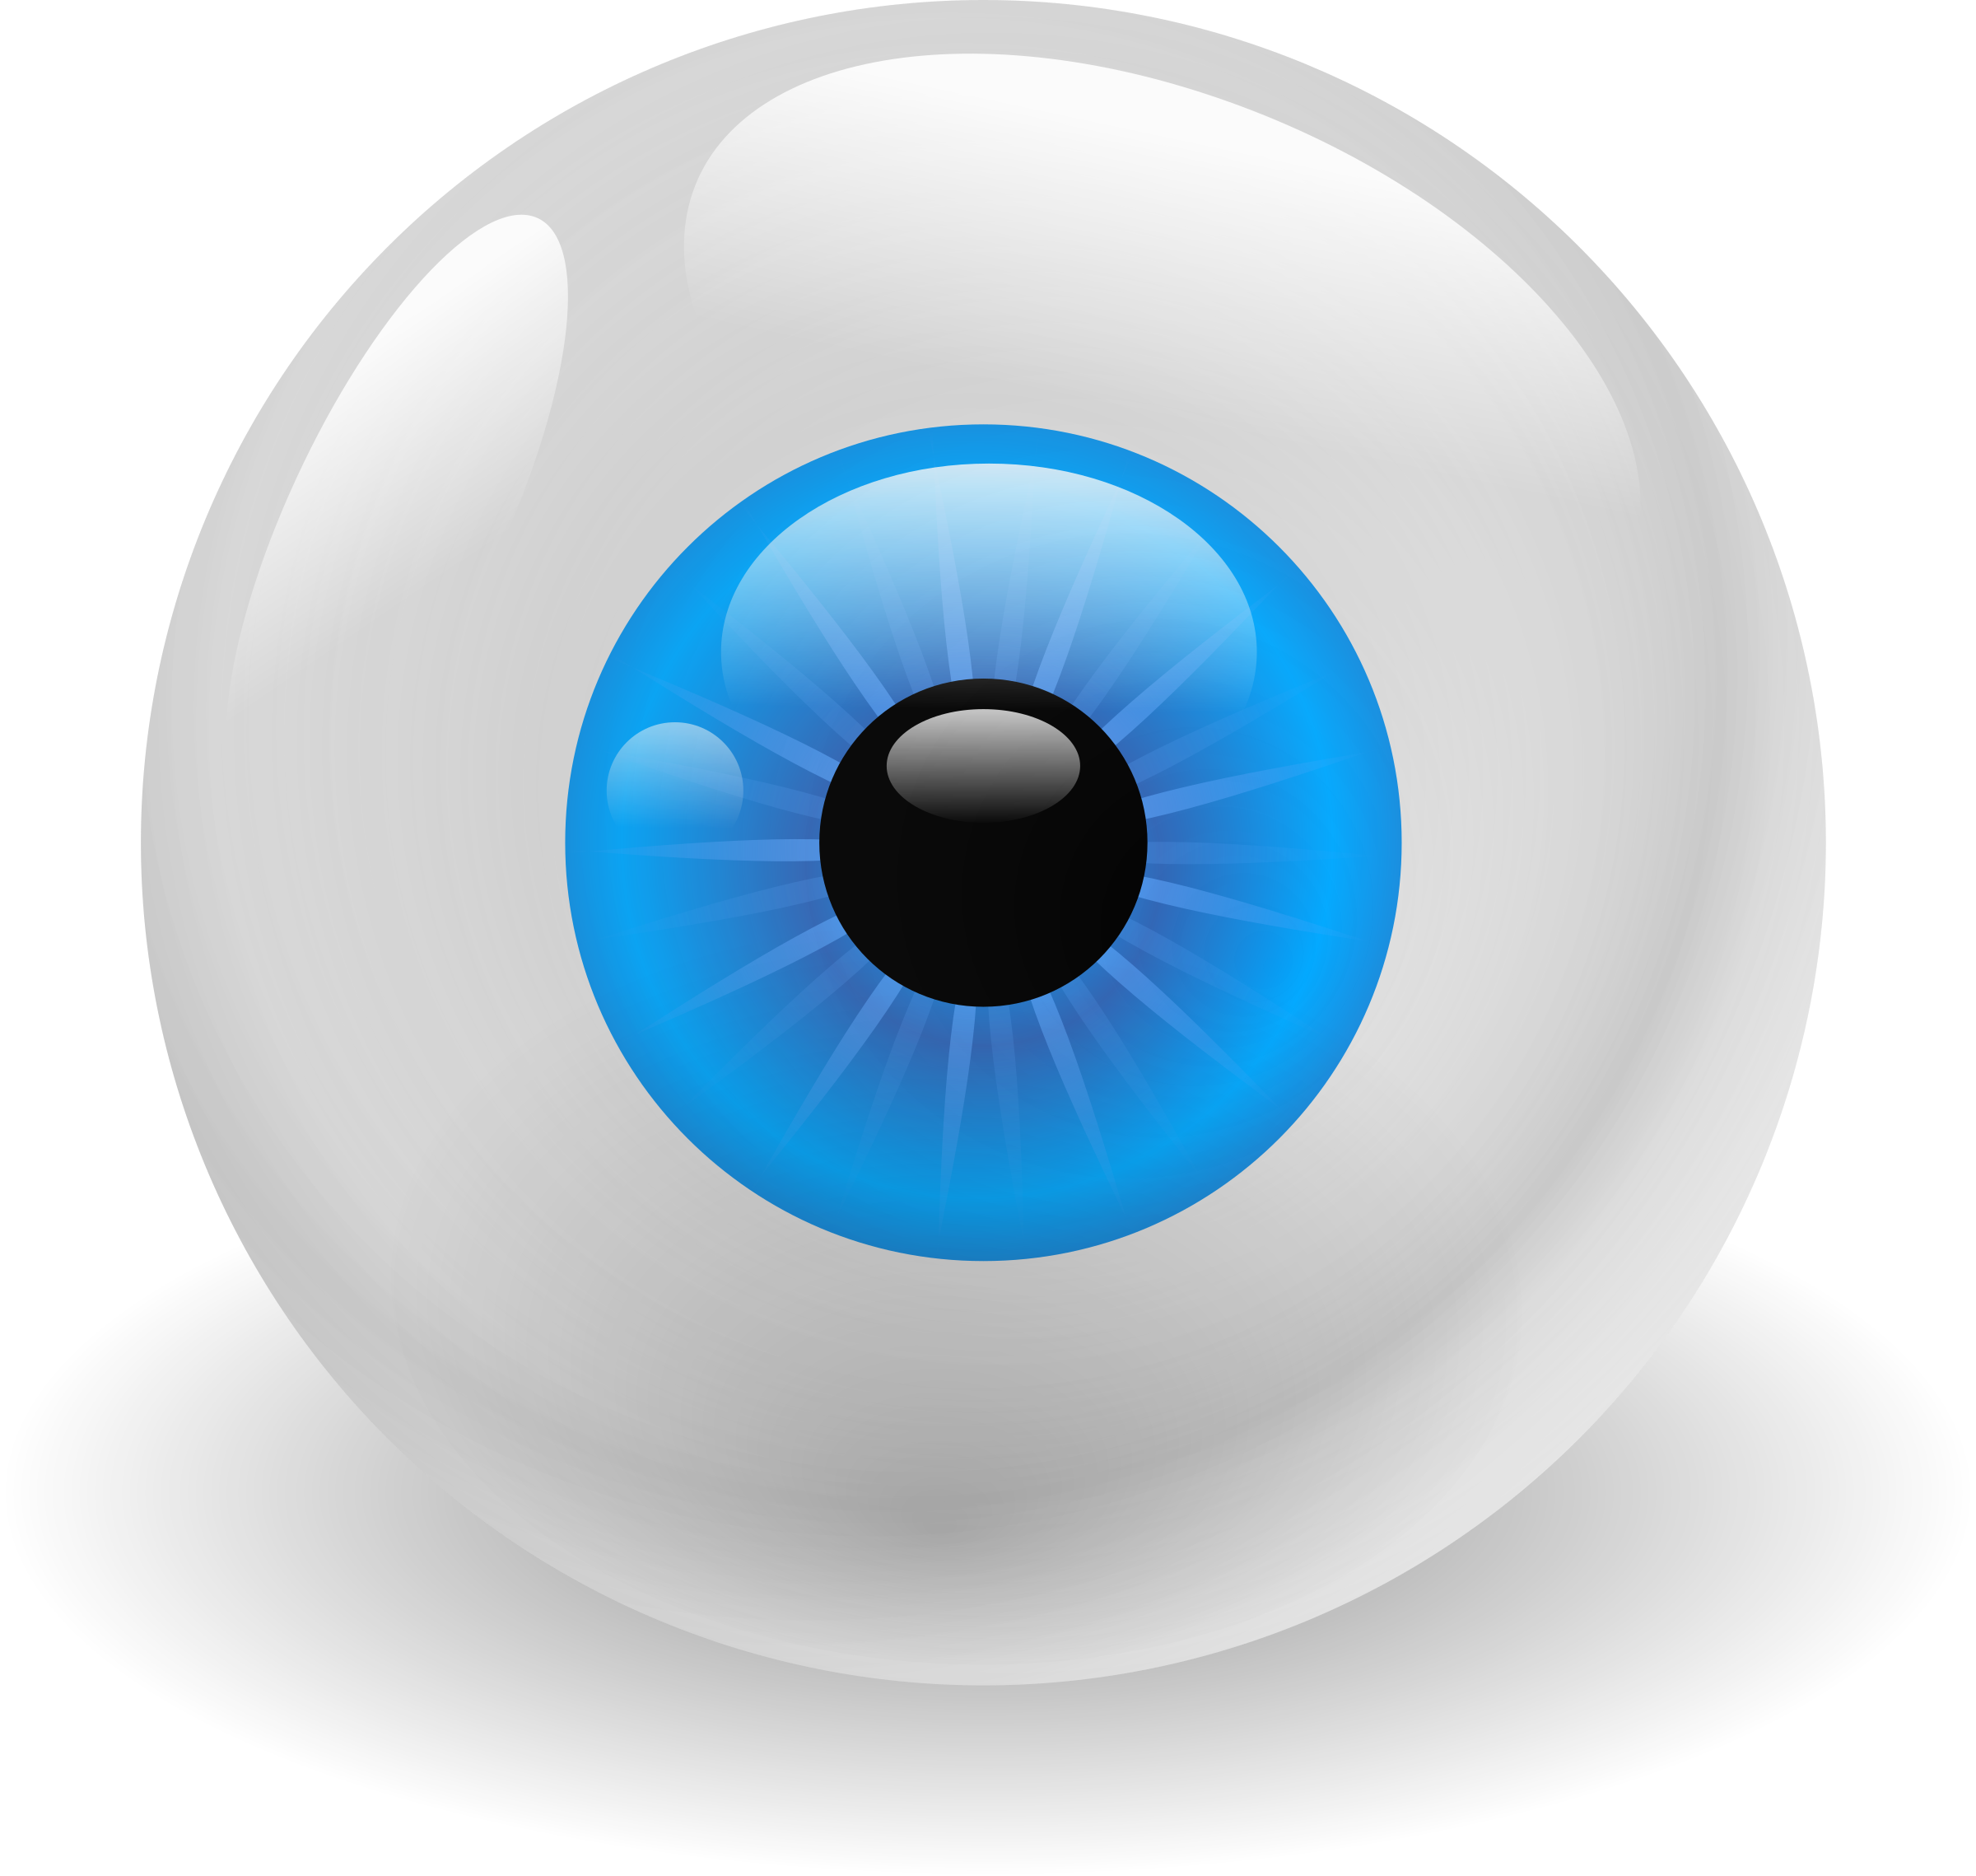 Eyeball clipart one eye. Eyes png images free